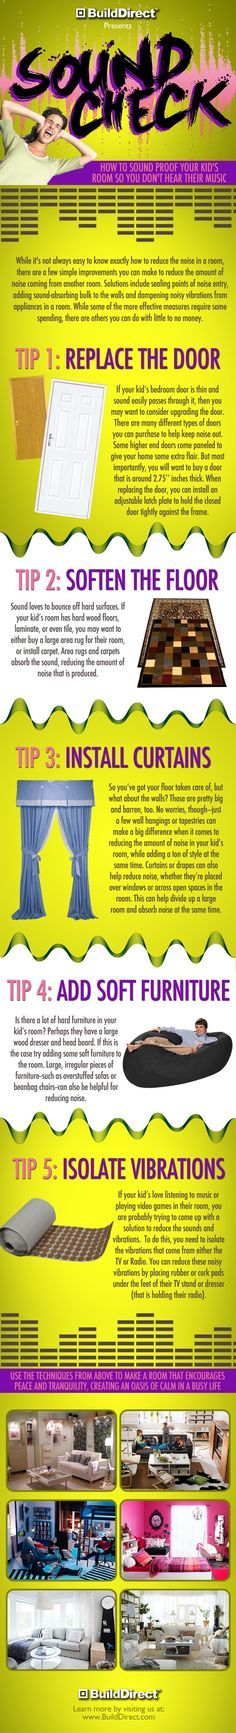 How To Soundproof Your Kid's Room - Step by Step Guide to getting a quieter home!